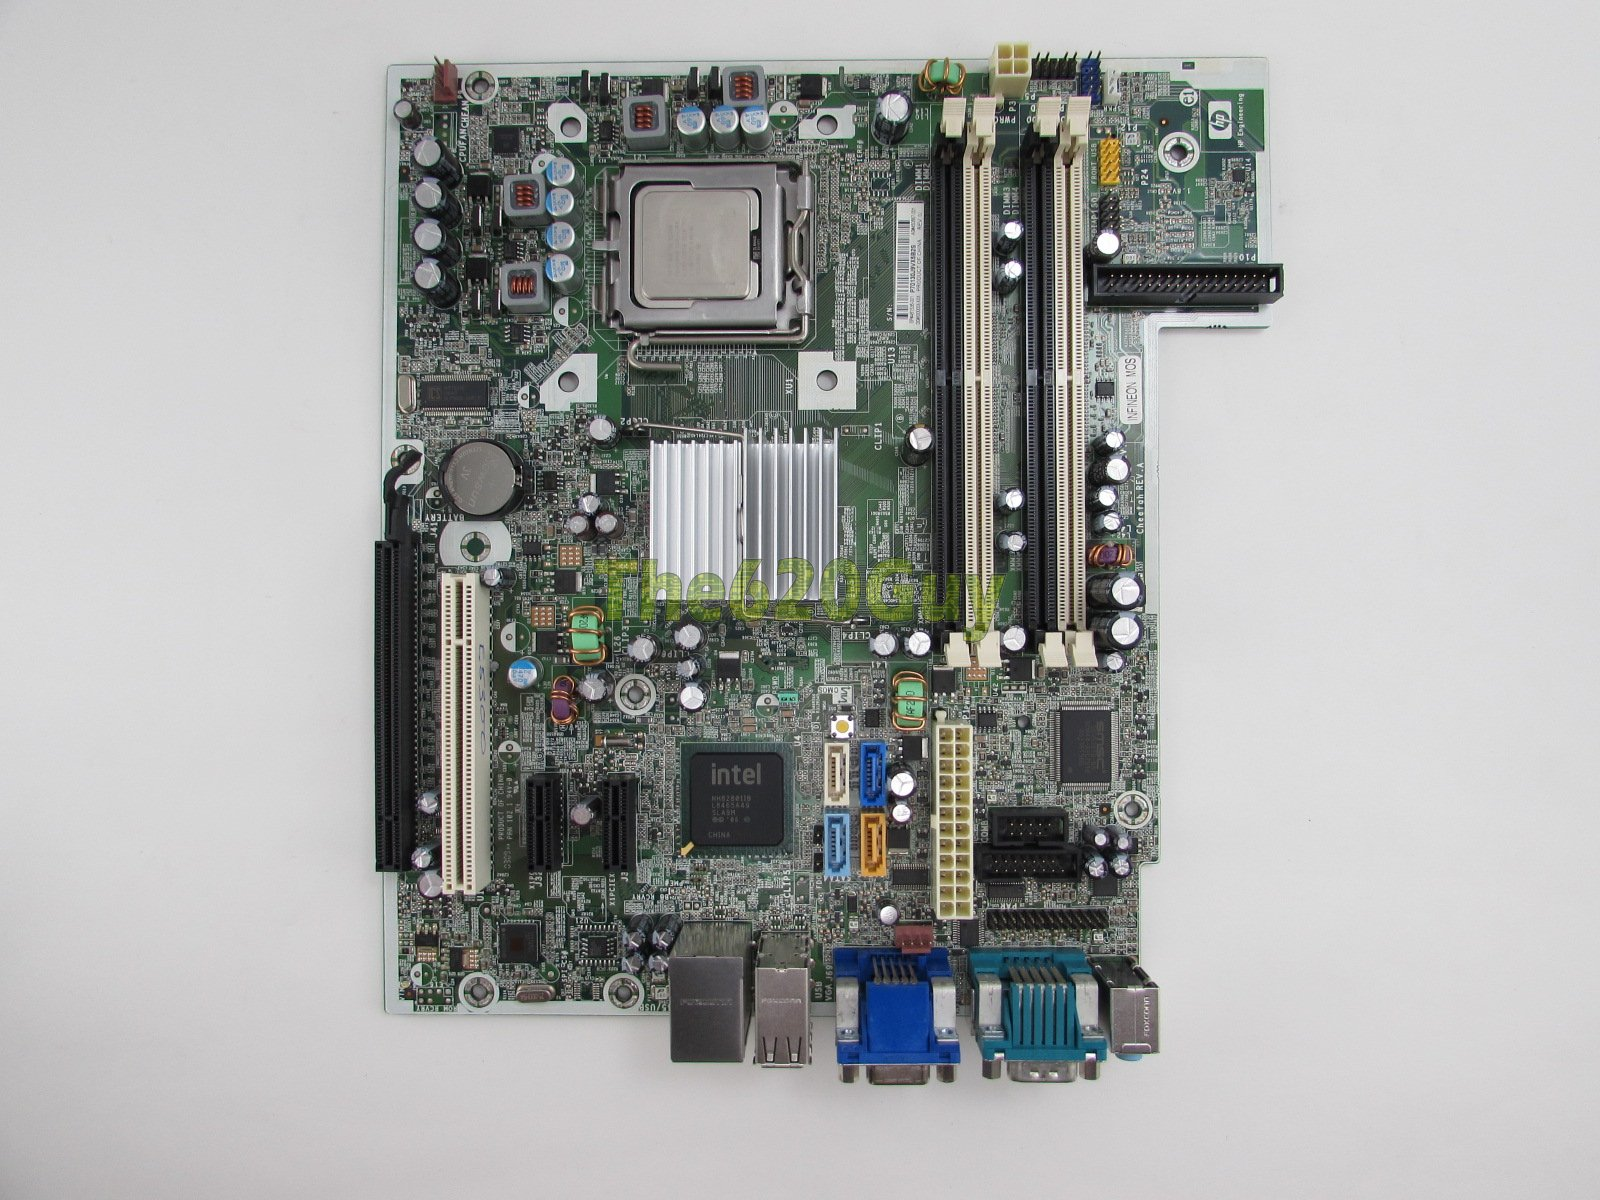 Hp Pavilion A6000 Motherboard Layout Ht2000 Wiring Diagram Dc5800 Library Desktop Manual